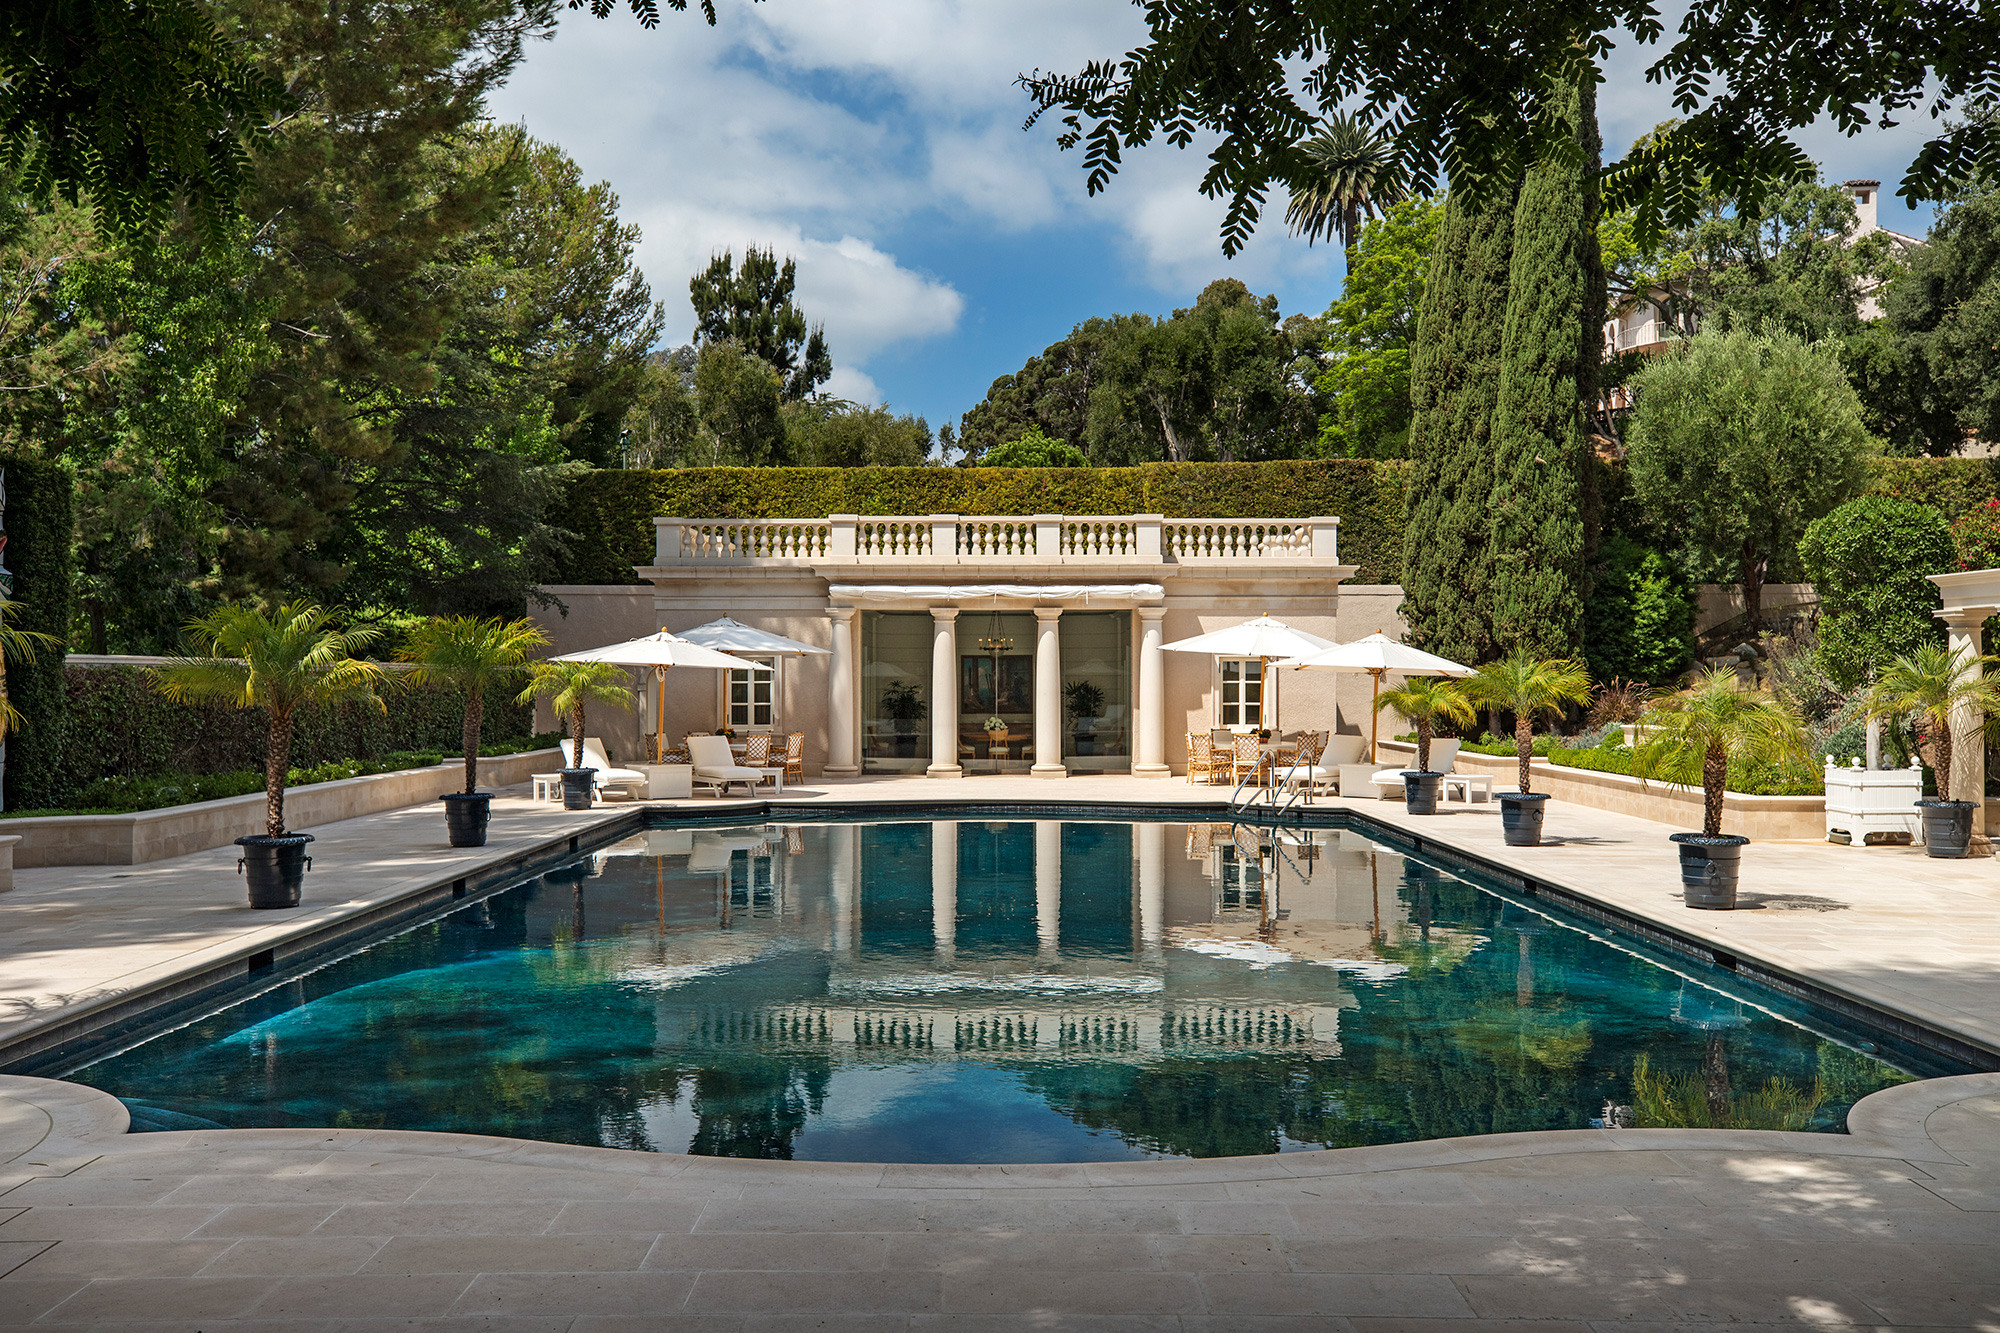 The Real Beverly Hillbillies Mansion for Sale in Bel-Air Just Got a $50 Million Price Chop most-expensive-home-america-pool